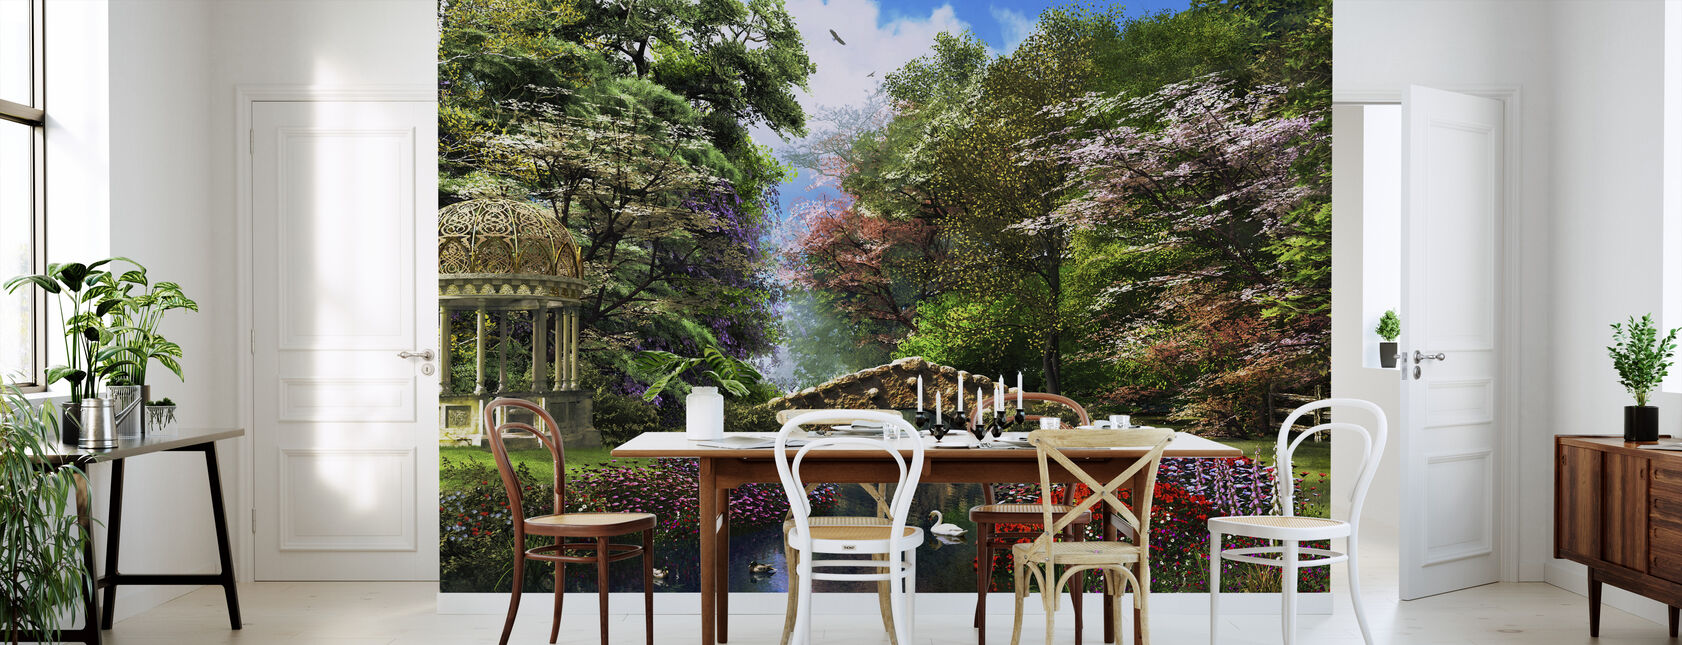 The Garden of Peace - Wallpaper - Kitchen